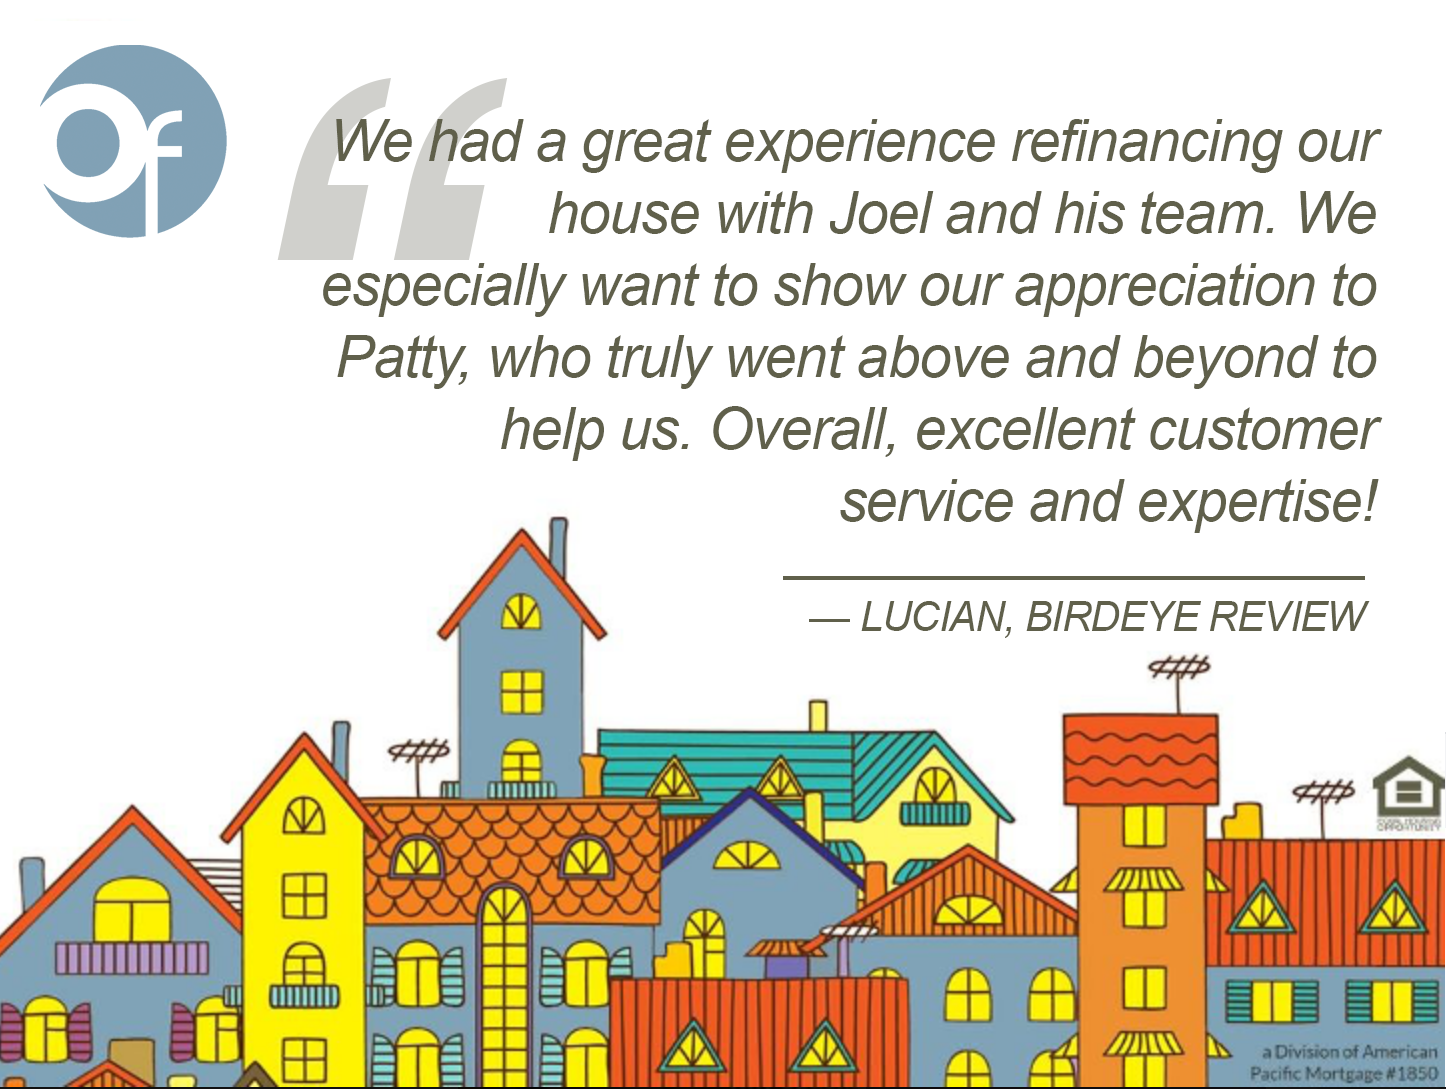 We had a great experience refinancing our house with Joel and his team. We especially want to show our appreciation to Patty, who truly went above and beyond to help us. Overall, excellent customer service and expertise!